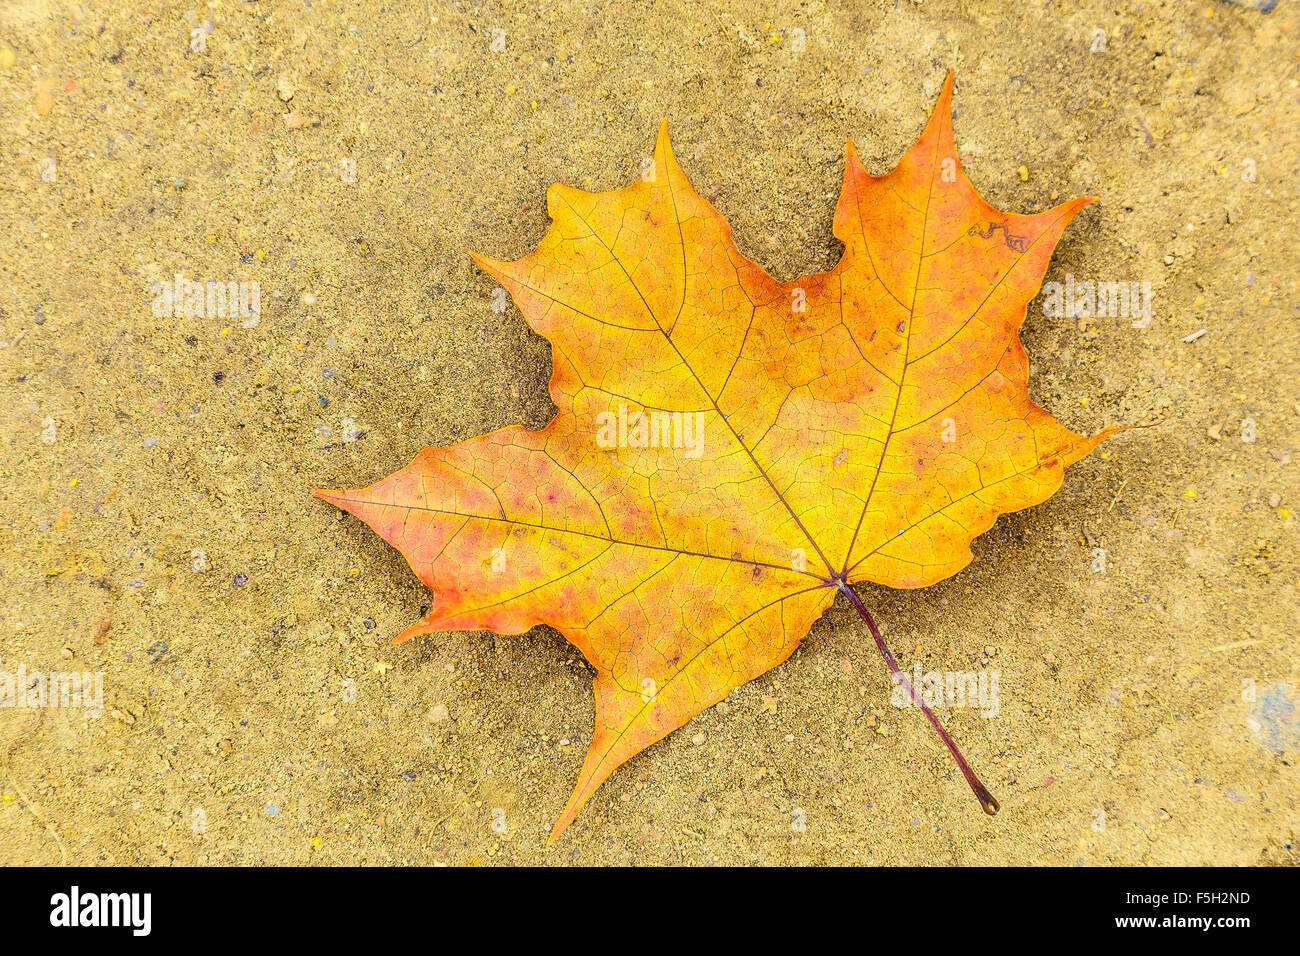 Colorful Maple Leaf Lying on the Ground Stock Photo - Alamy